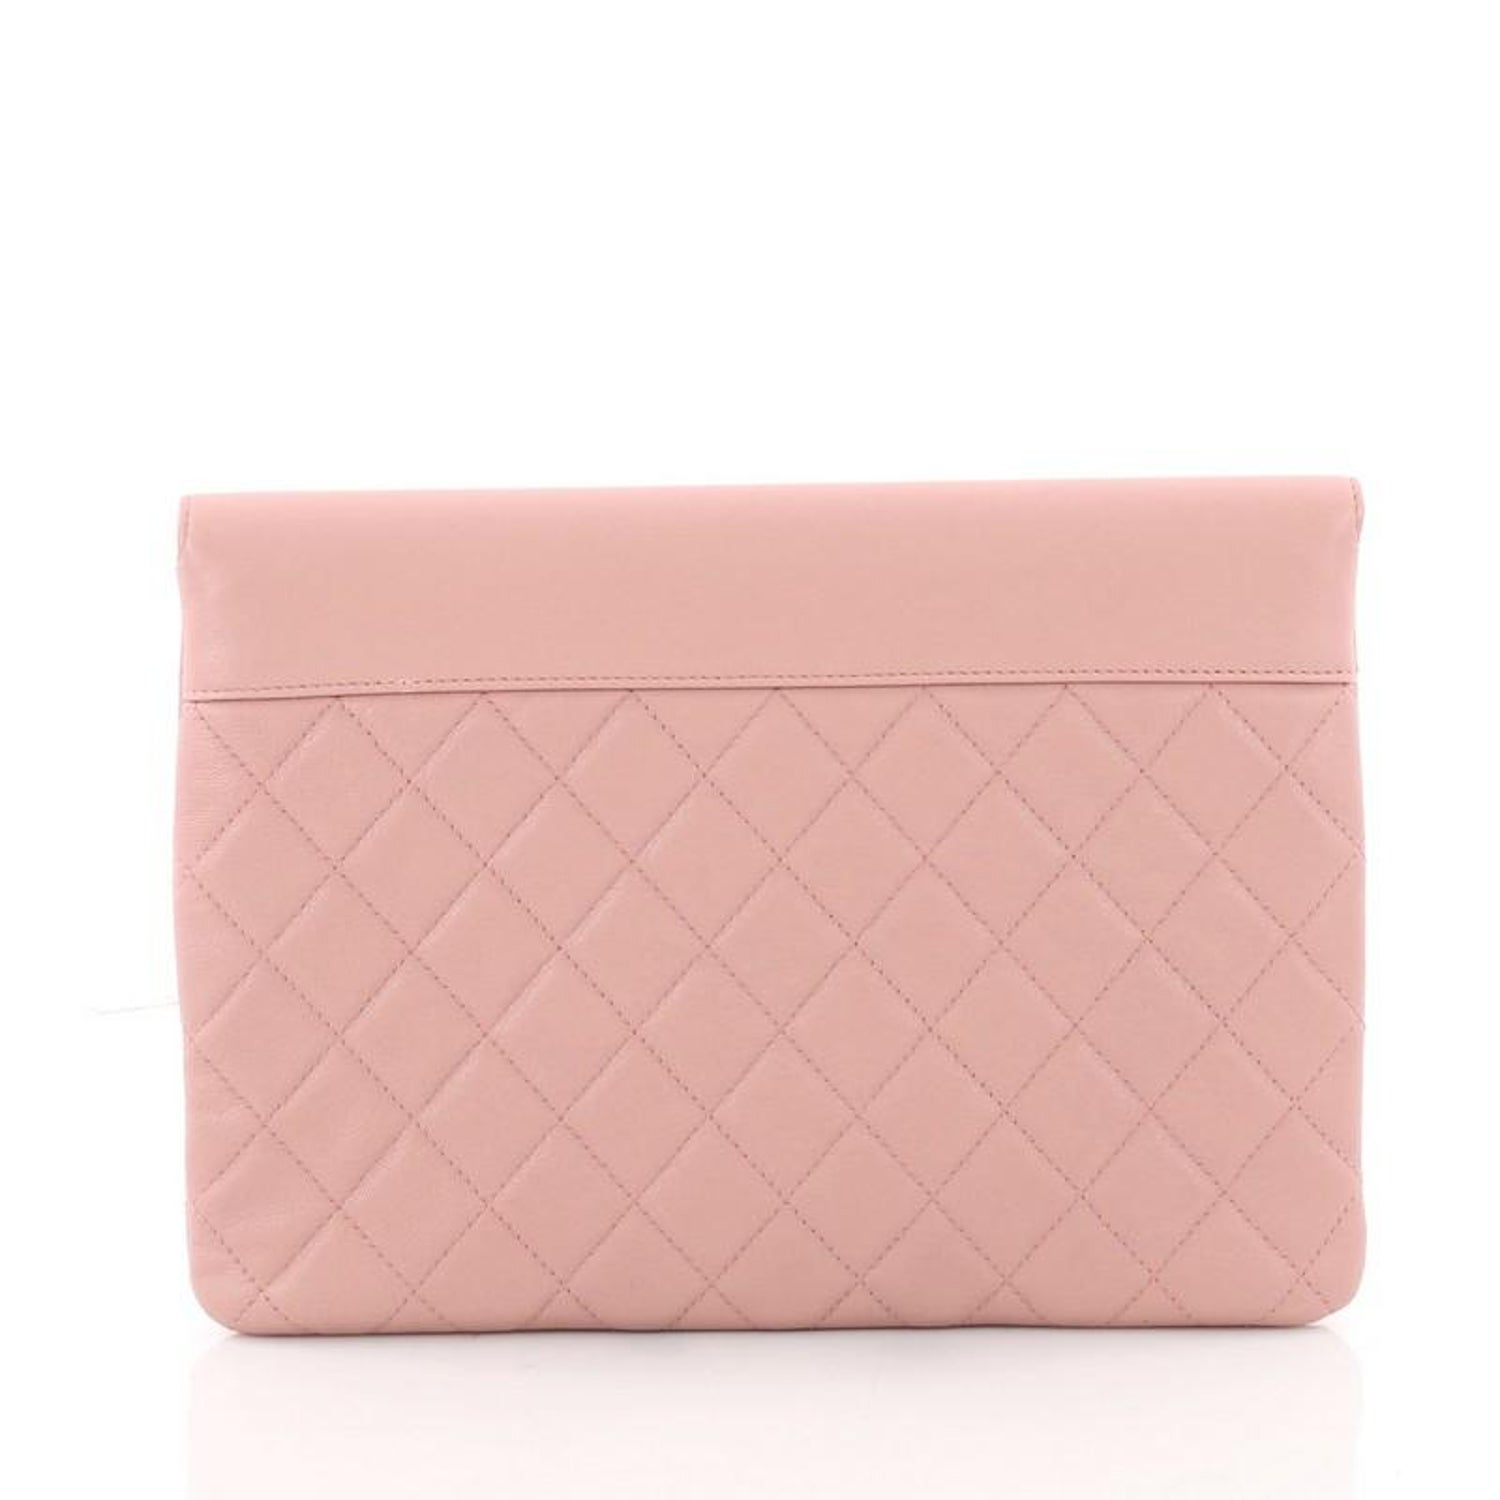 00a31541807a Chanel CC Box Flap Pouch Quilted Goatskin at 1stdibs